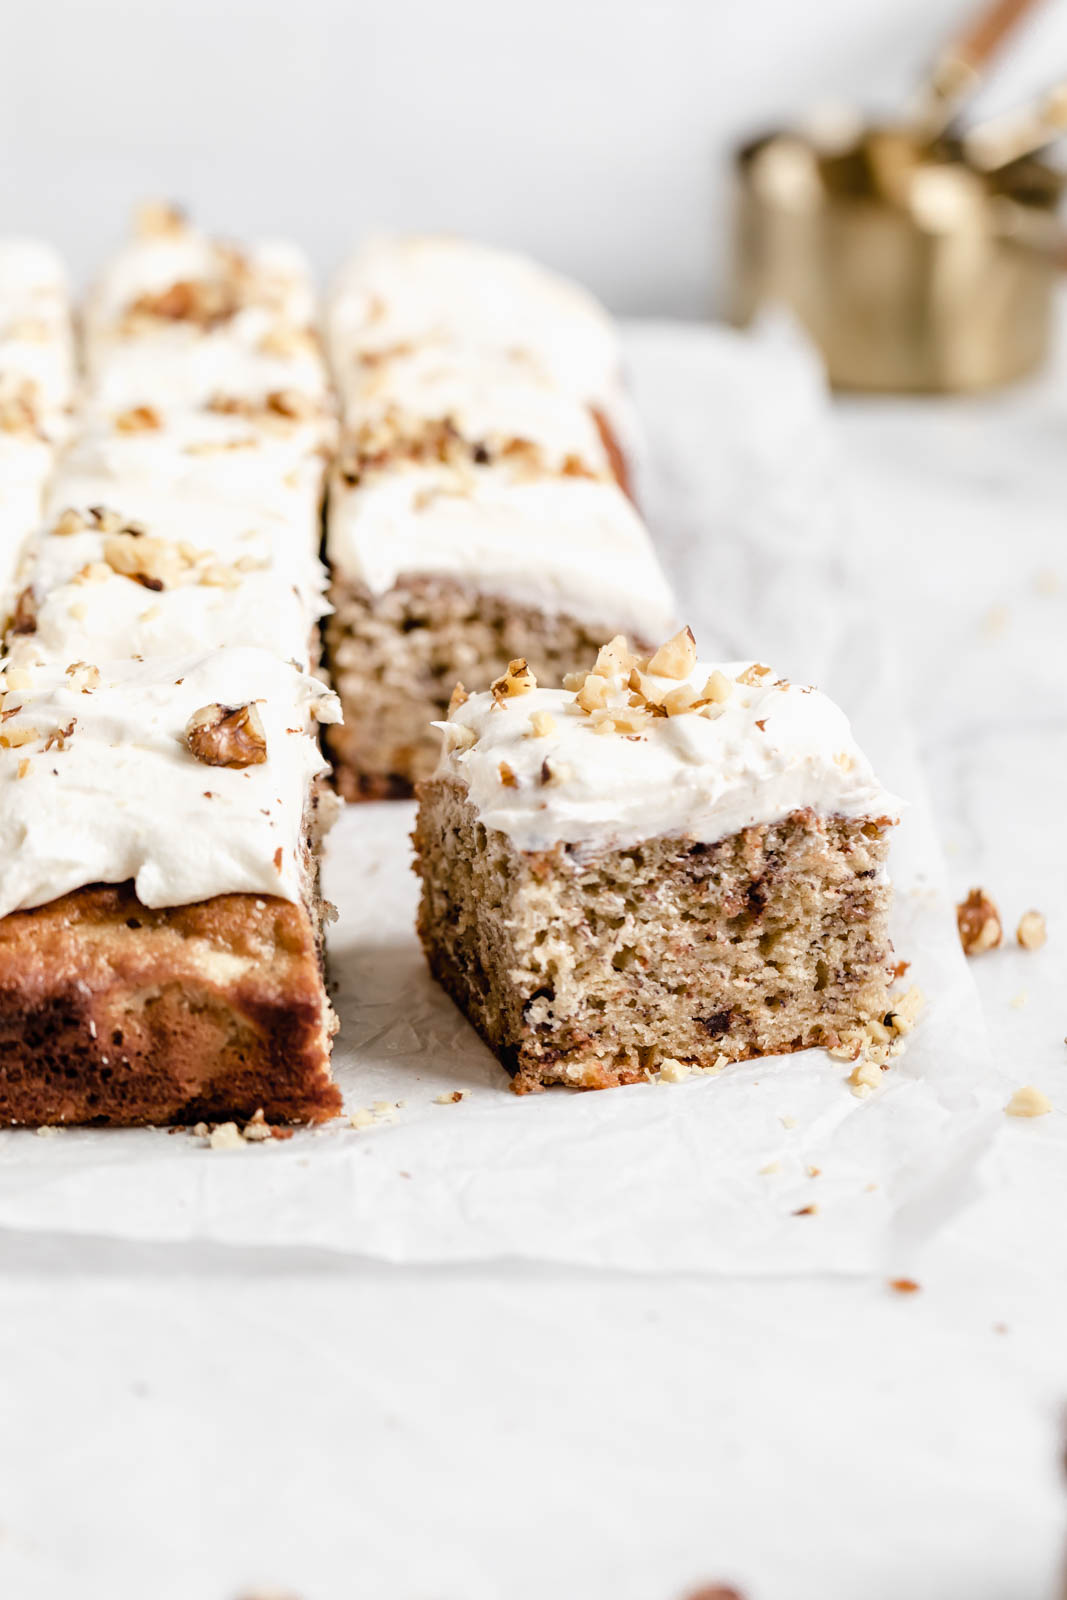 Fluffy and moist brown butter banana cake with cream cheese frosting. YUM.